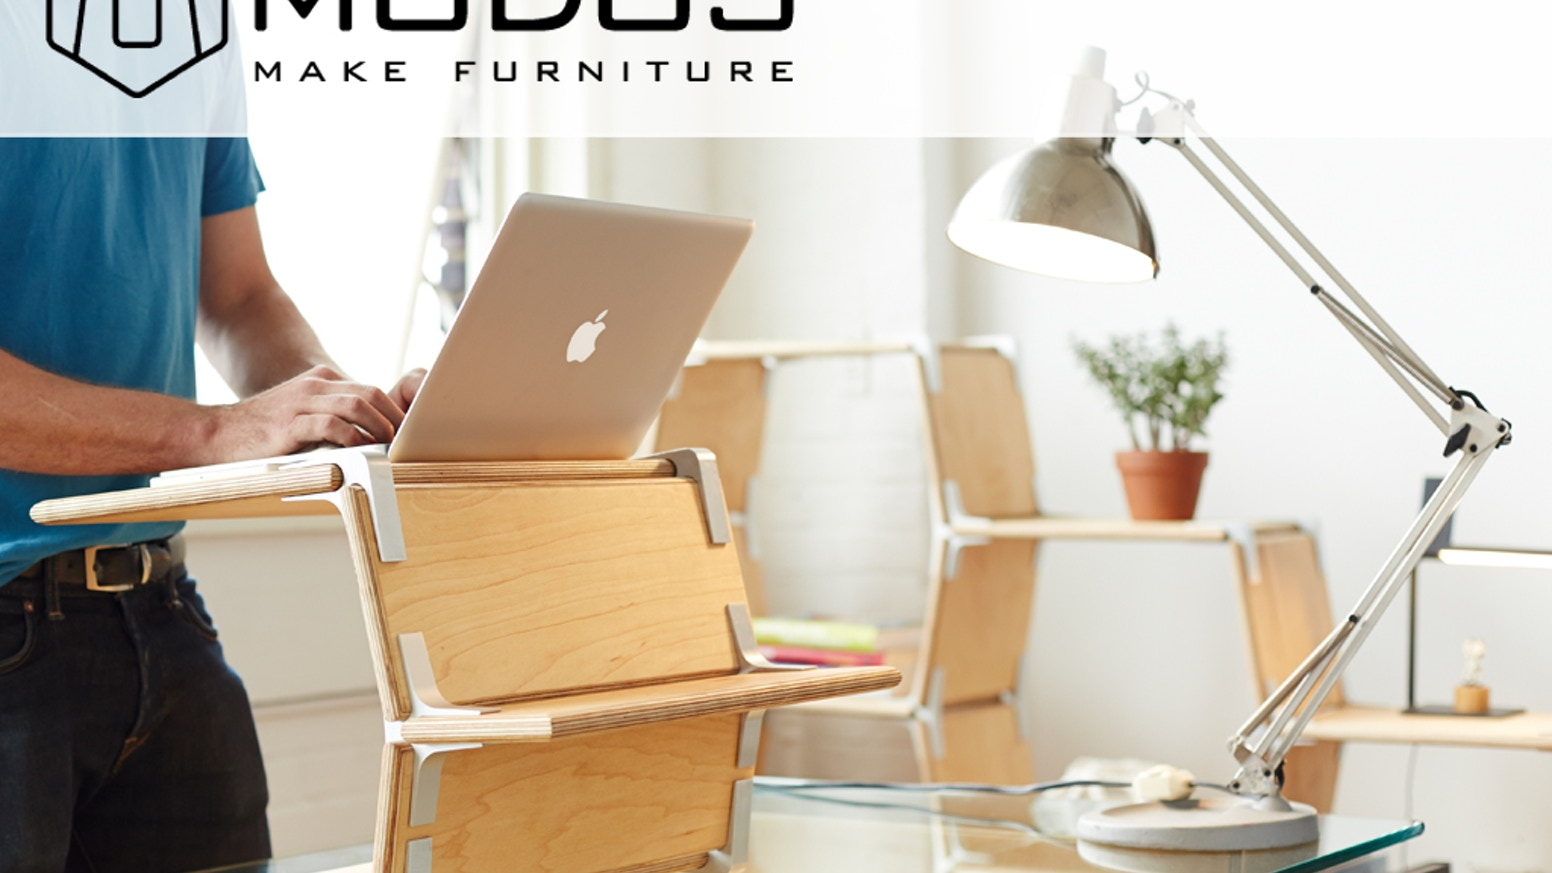 Modos is a modular furniture system that uses connectors and boards to make desks, shelves, standing desks, media centers or anything you want.